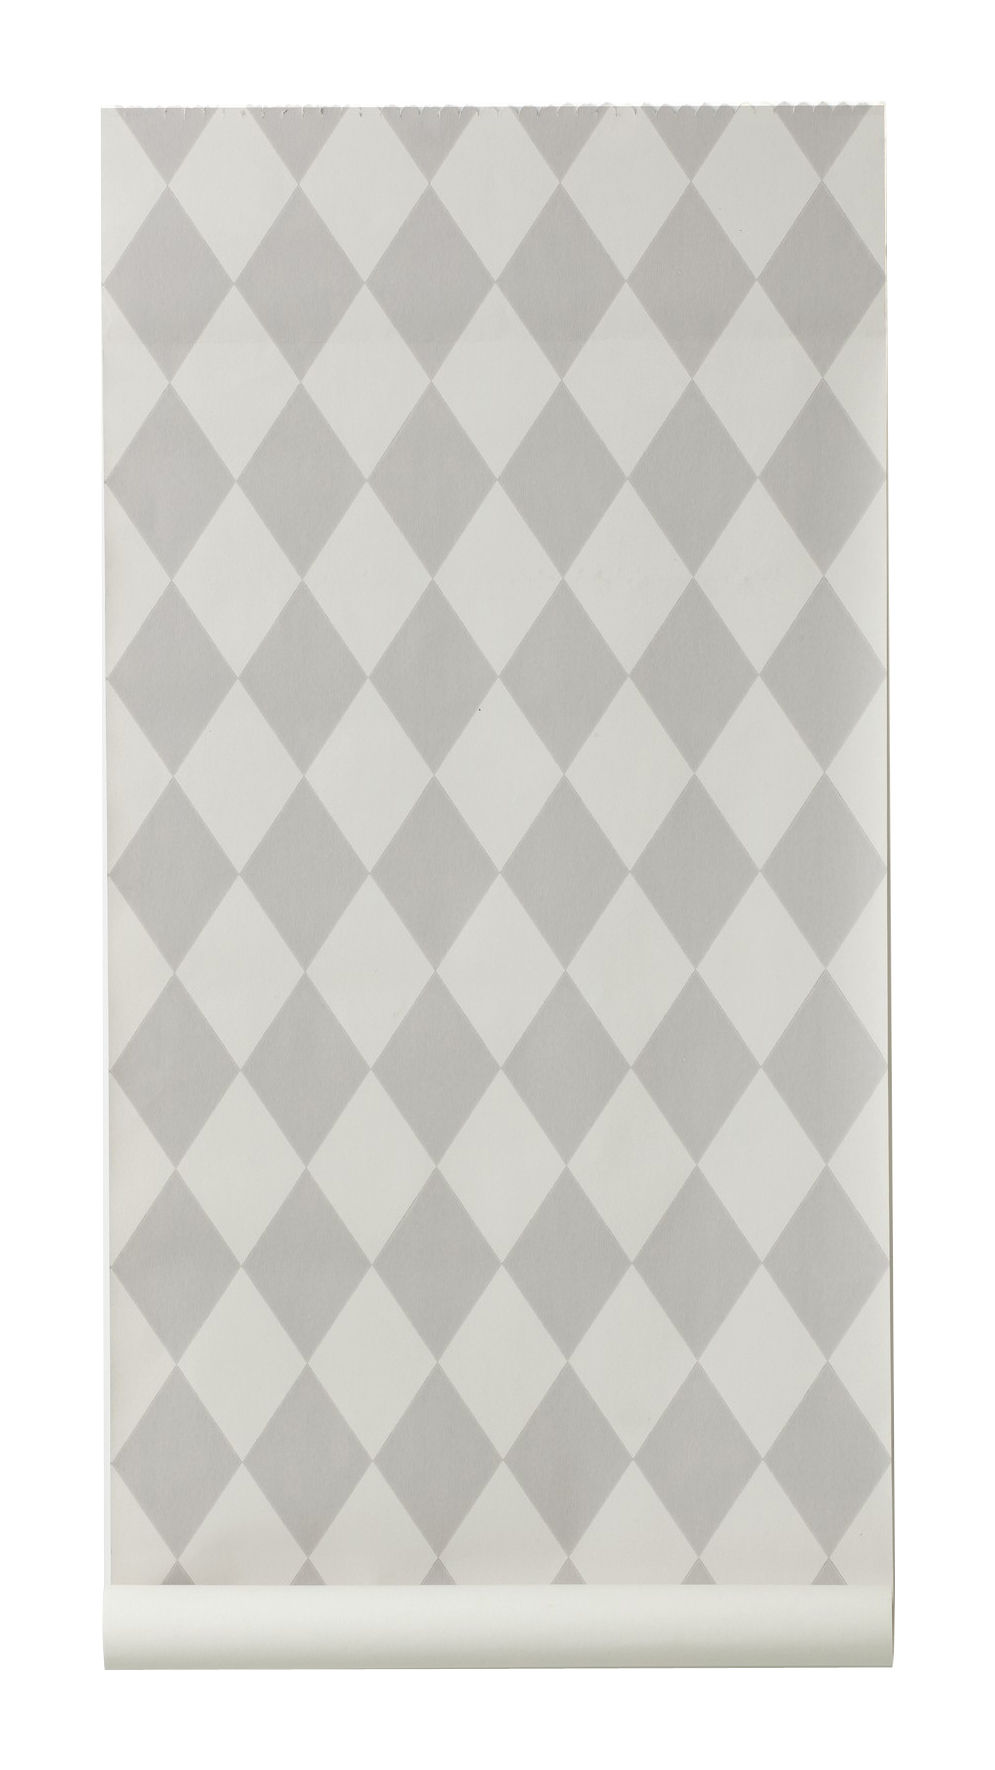 Decoration - Wallpaper & Wall Stickers - Harlequin Wallpaper - 1 panel by Ferm Living - Grey & Light grey - Non-woven fabric